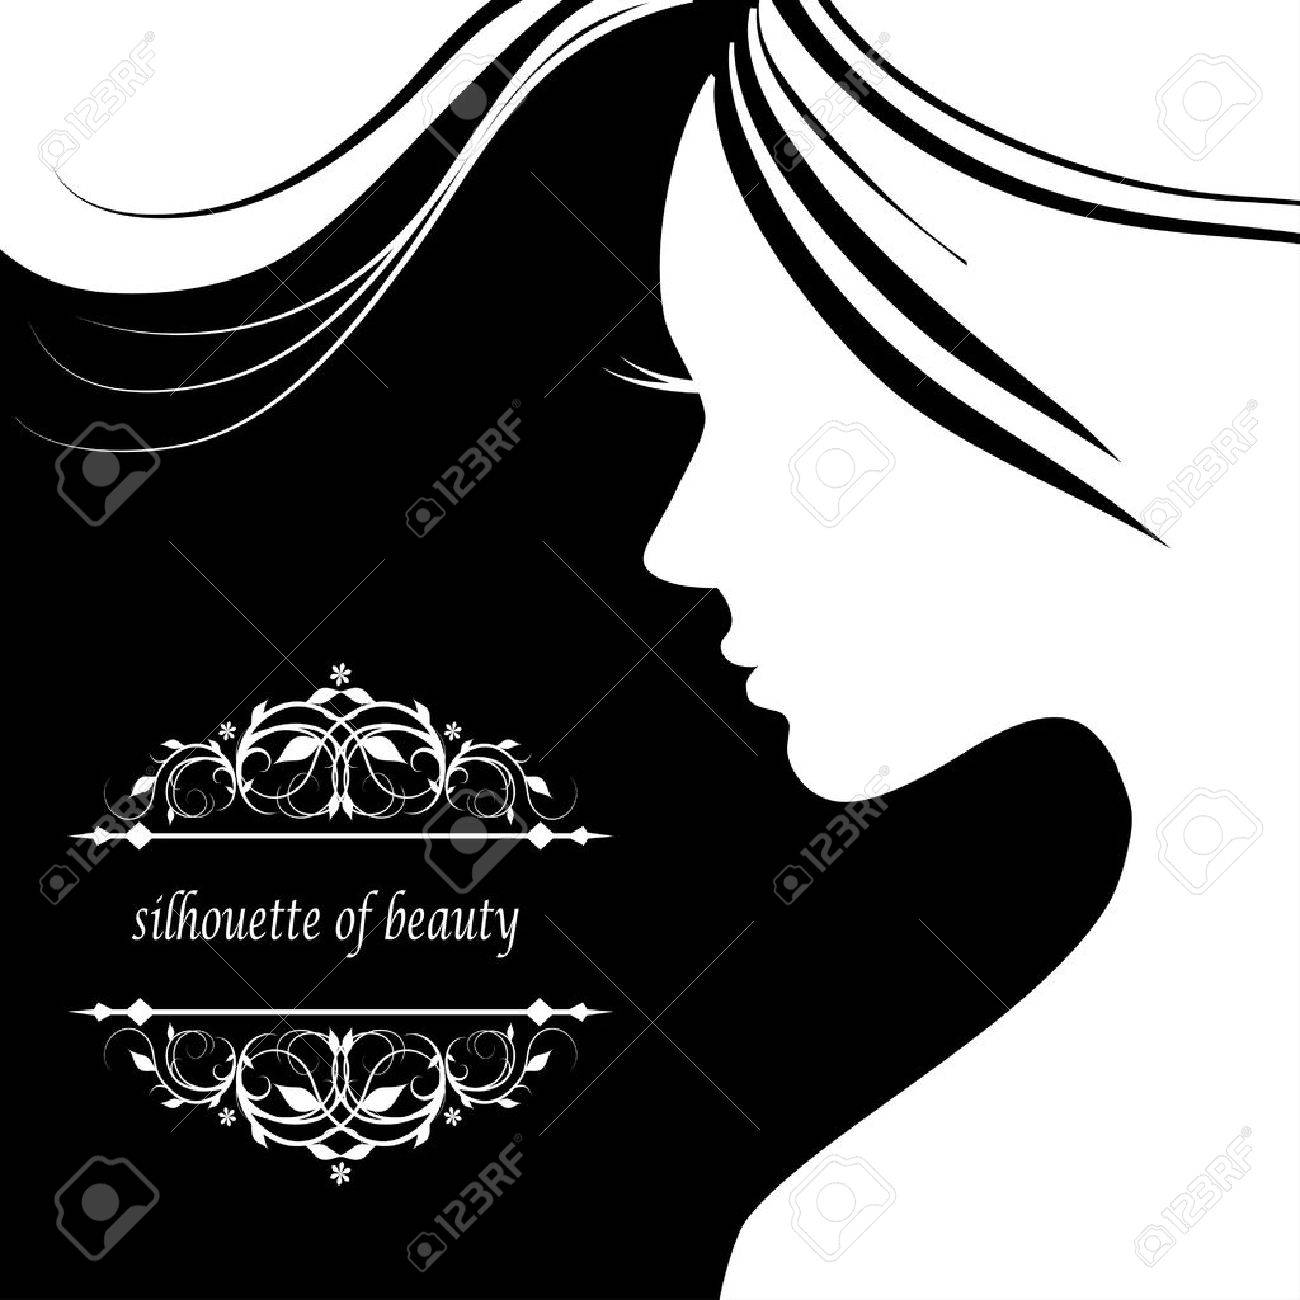 Vector illustration of Woman's silhouette with beautiful hair - 39520520